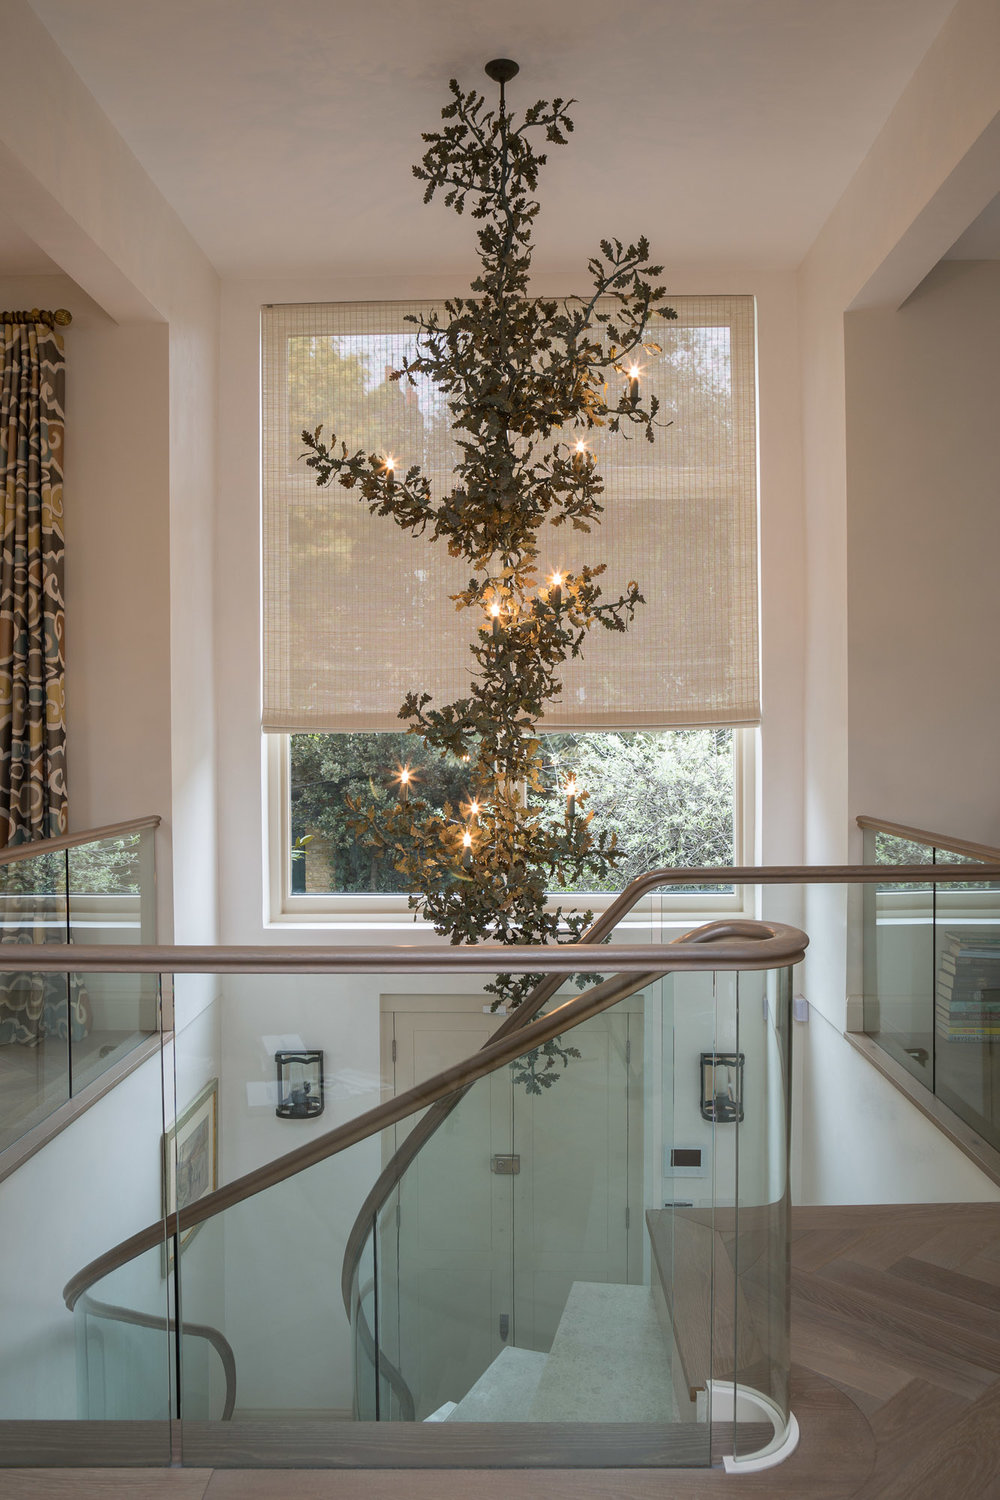 This stunning chandelier creates a wonderful centrepiece which can be seen when entering and from the whole of the first floor.  Controlled by the  Lutron  Lighting system it can be dimmed to the perfect lighting setting for any time of day